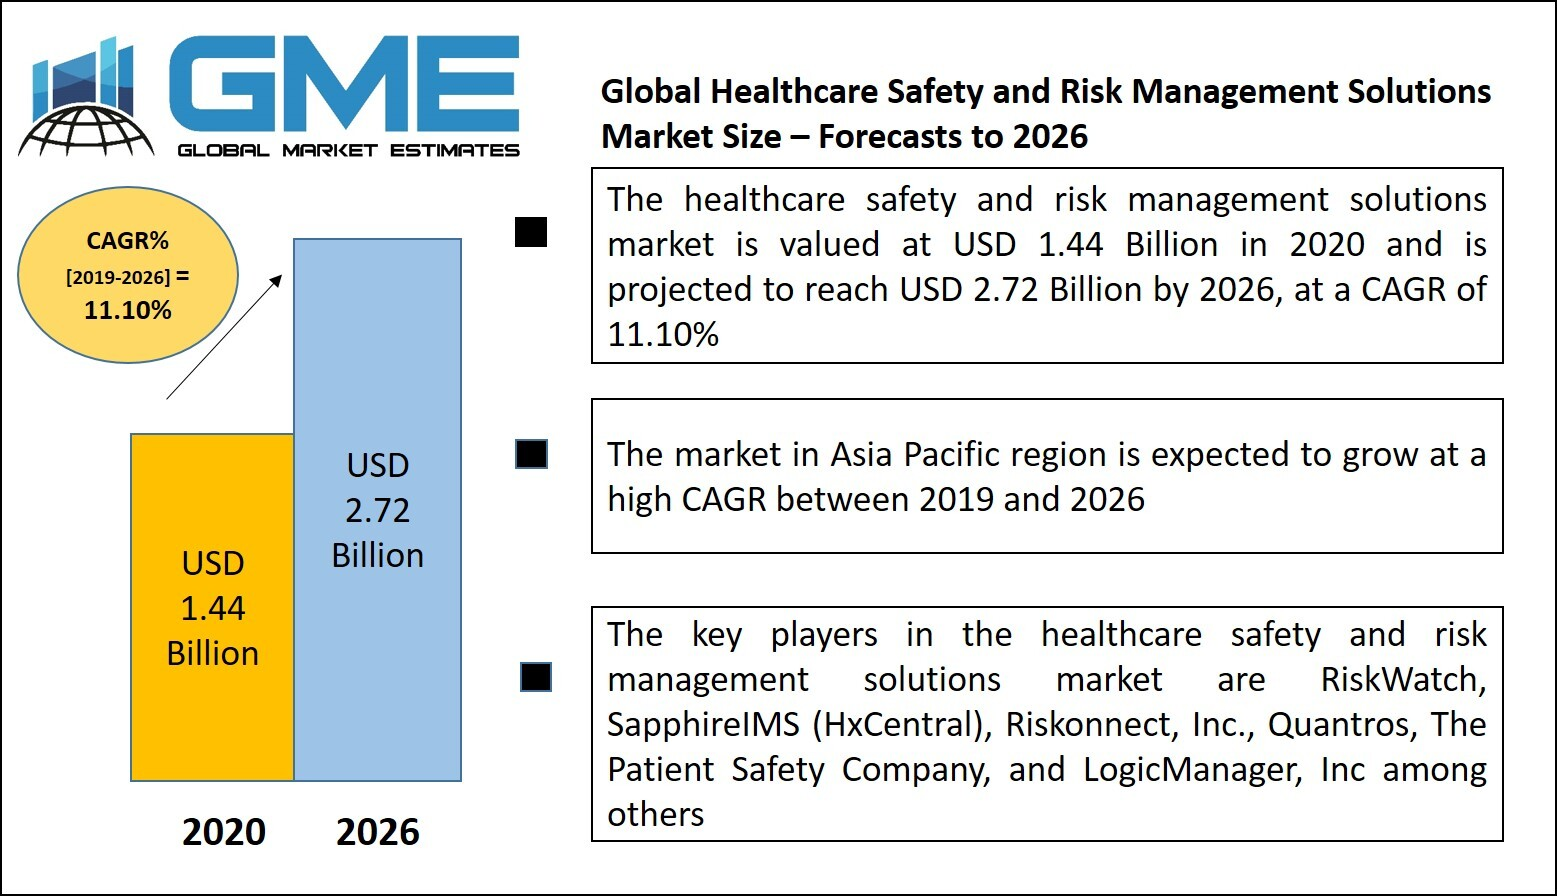 Healthcare Safety and Risk Management Solutions Market